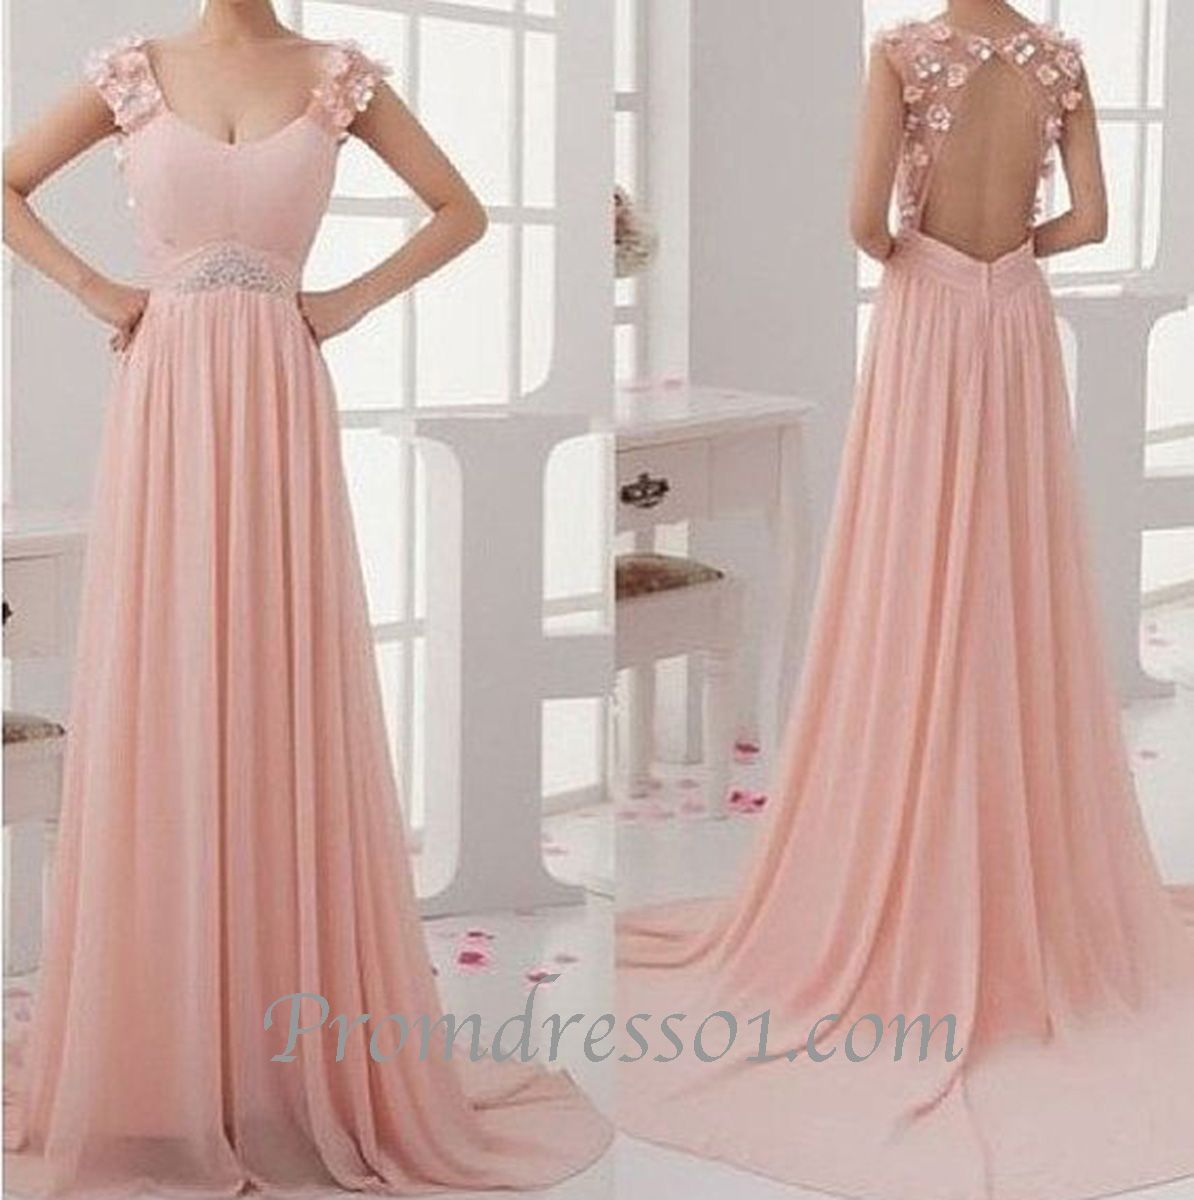 Unique pink chiffon prom dress with straps, ball gown, pretty long ...